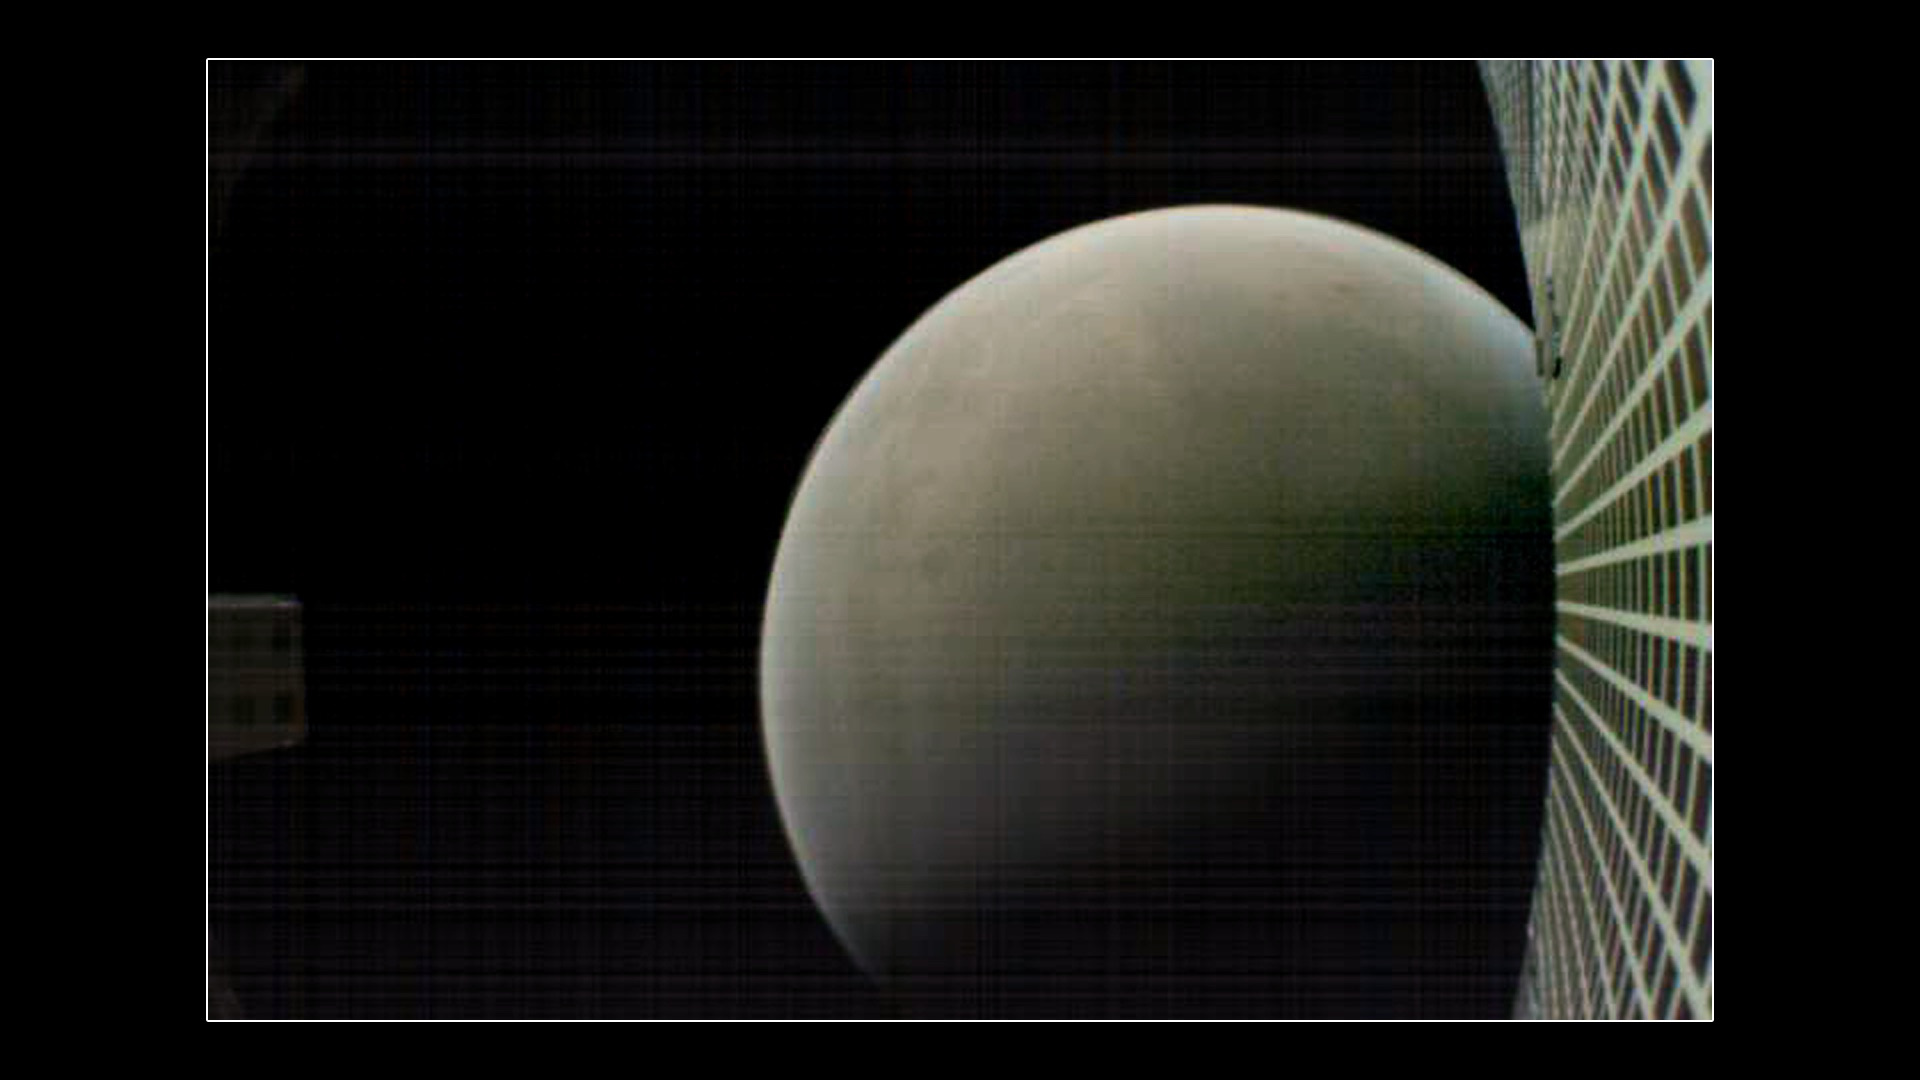 MarCO-B, one of the experimental Mars Cube One (MarCO) CubeSats, took this image of Mars from about 4,700 miles (7,600 kilometers) away during its flyby of the Red Planet on Nov. 26, 2018. MarCO-B was flying by Mars with its twin, MarCO-A, to attempt to serve as communications relays for NASA's InSight spacecraft as it landed on Mars.